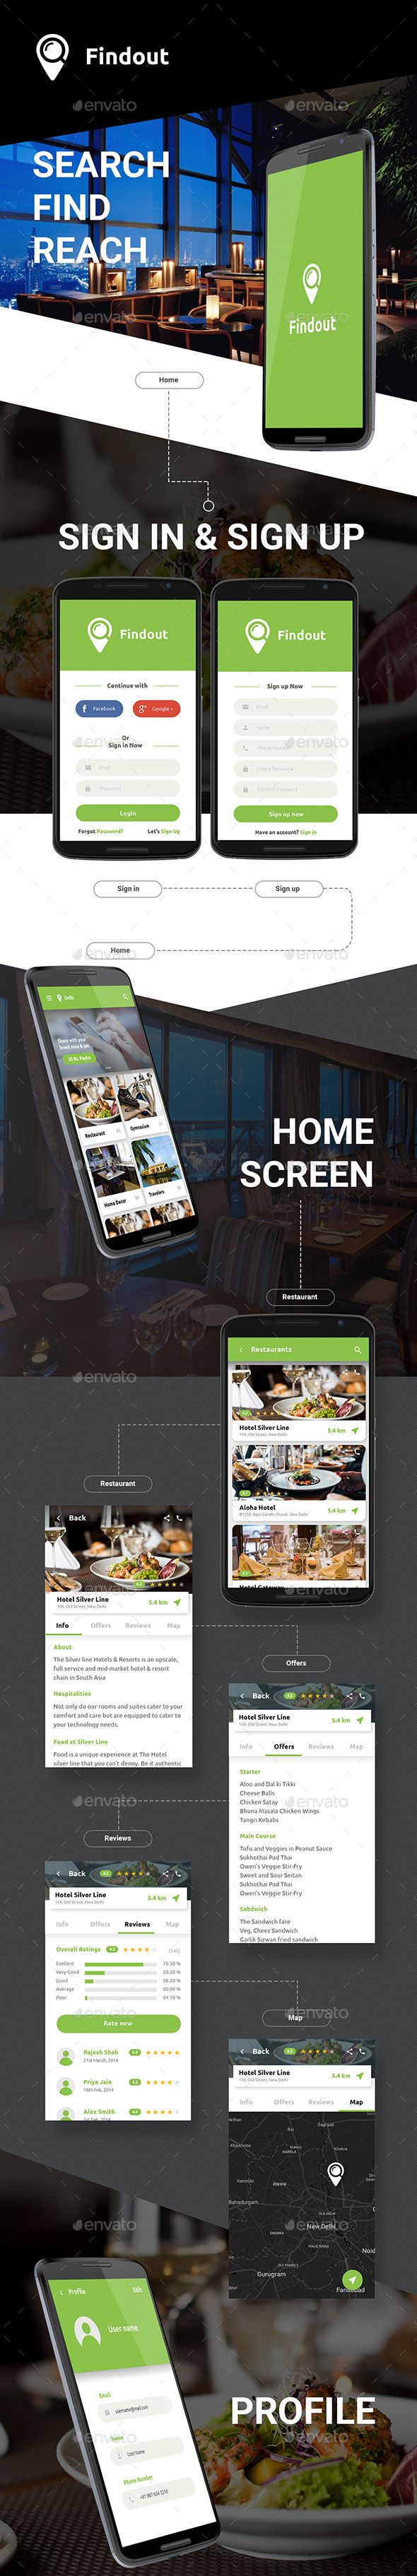 Findout:Places Nearby, like Restaurant, Cinema, Gym and all Service Finder - User Interfaces Web Elements